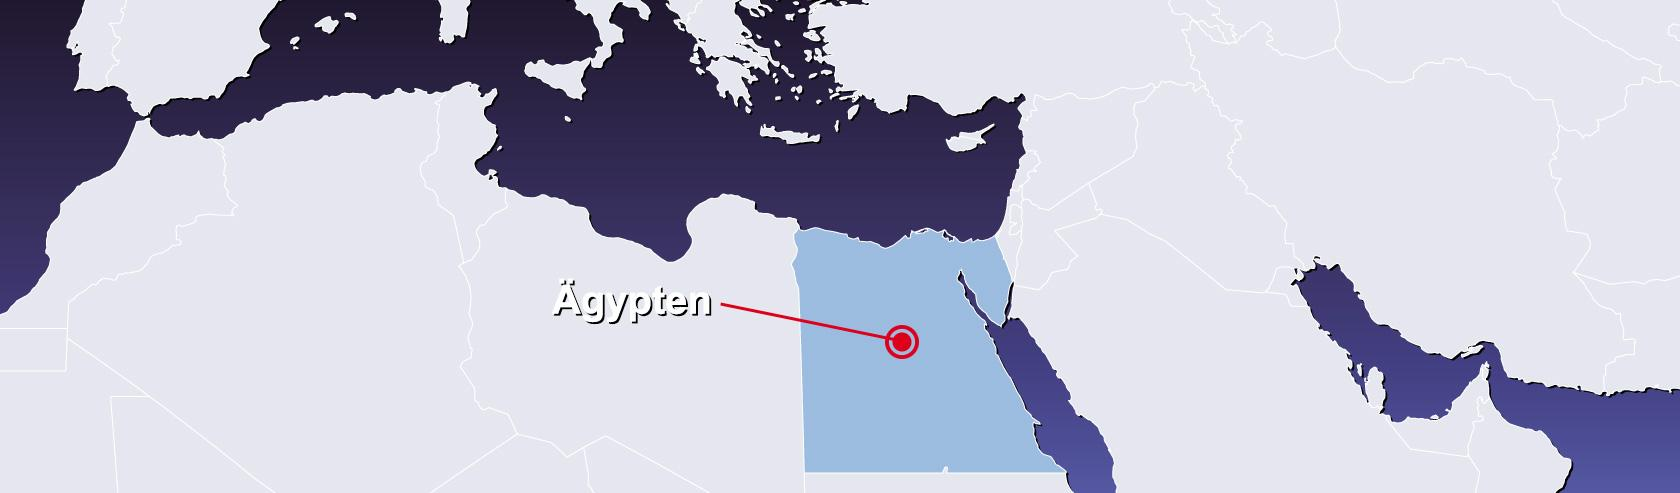 Transport-Ägypten